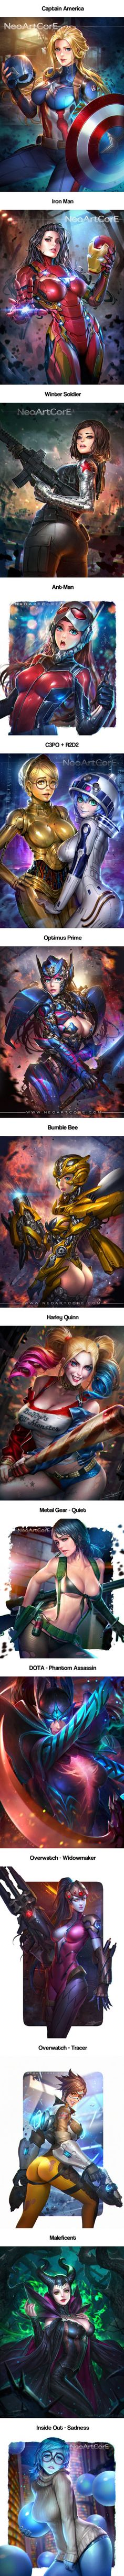 14 Movie & Game Characters Transformed In Pin-Up Style, All Waifu Materials (By NeoArtCorE)